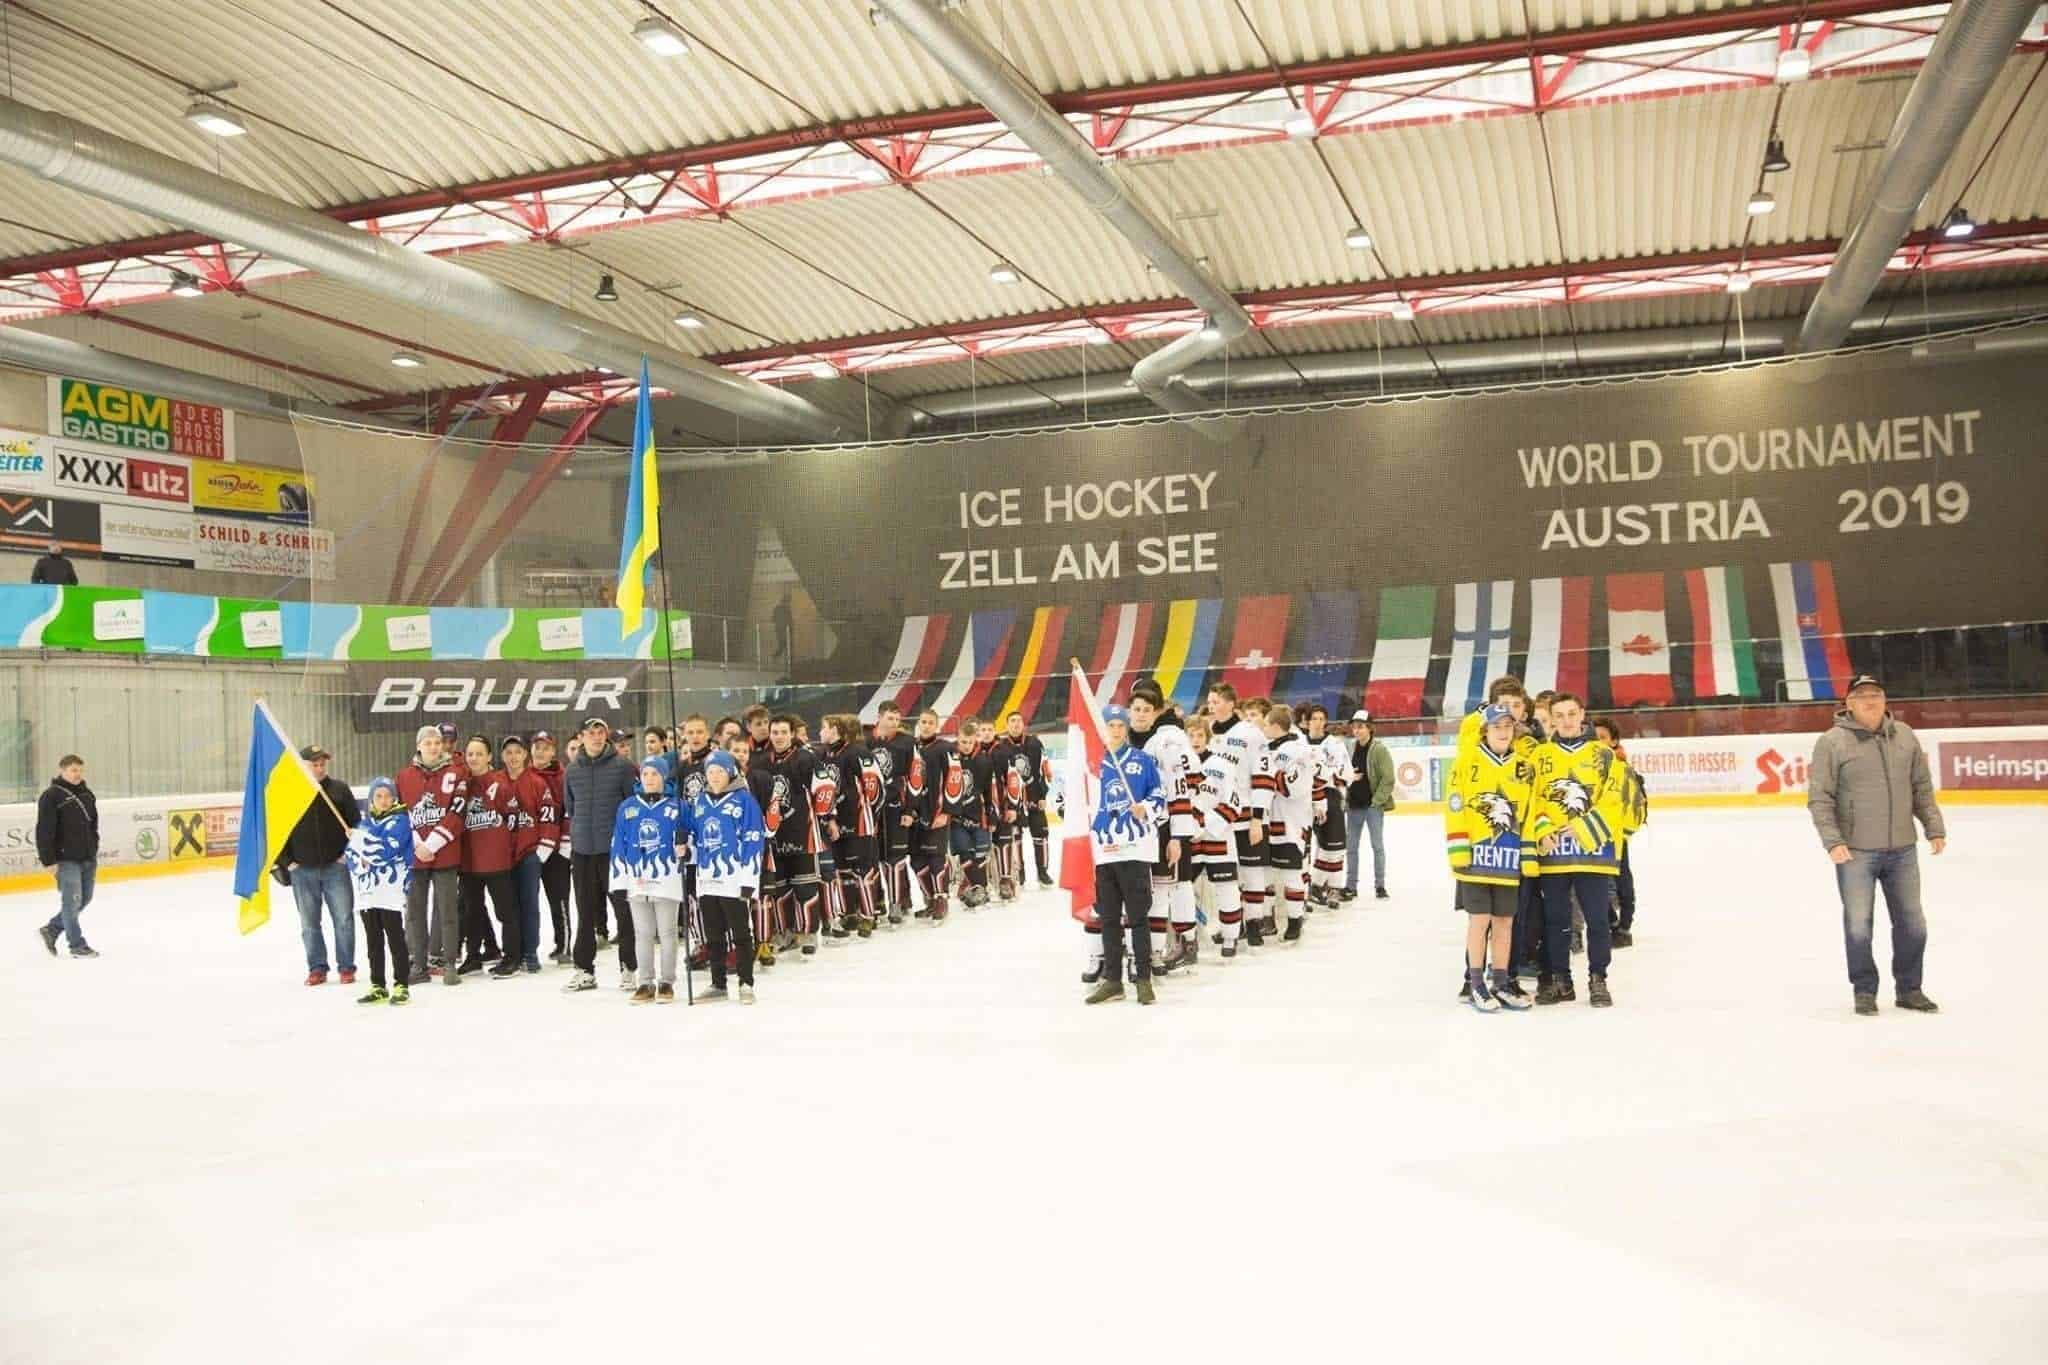 Eishockey World Tournament 2020